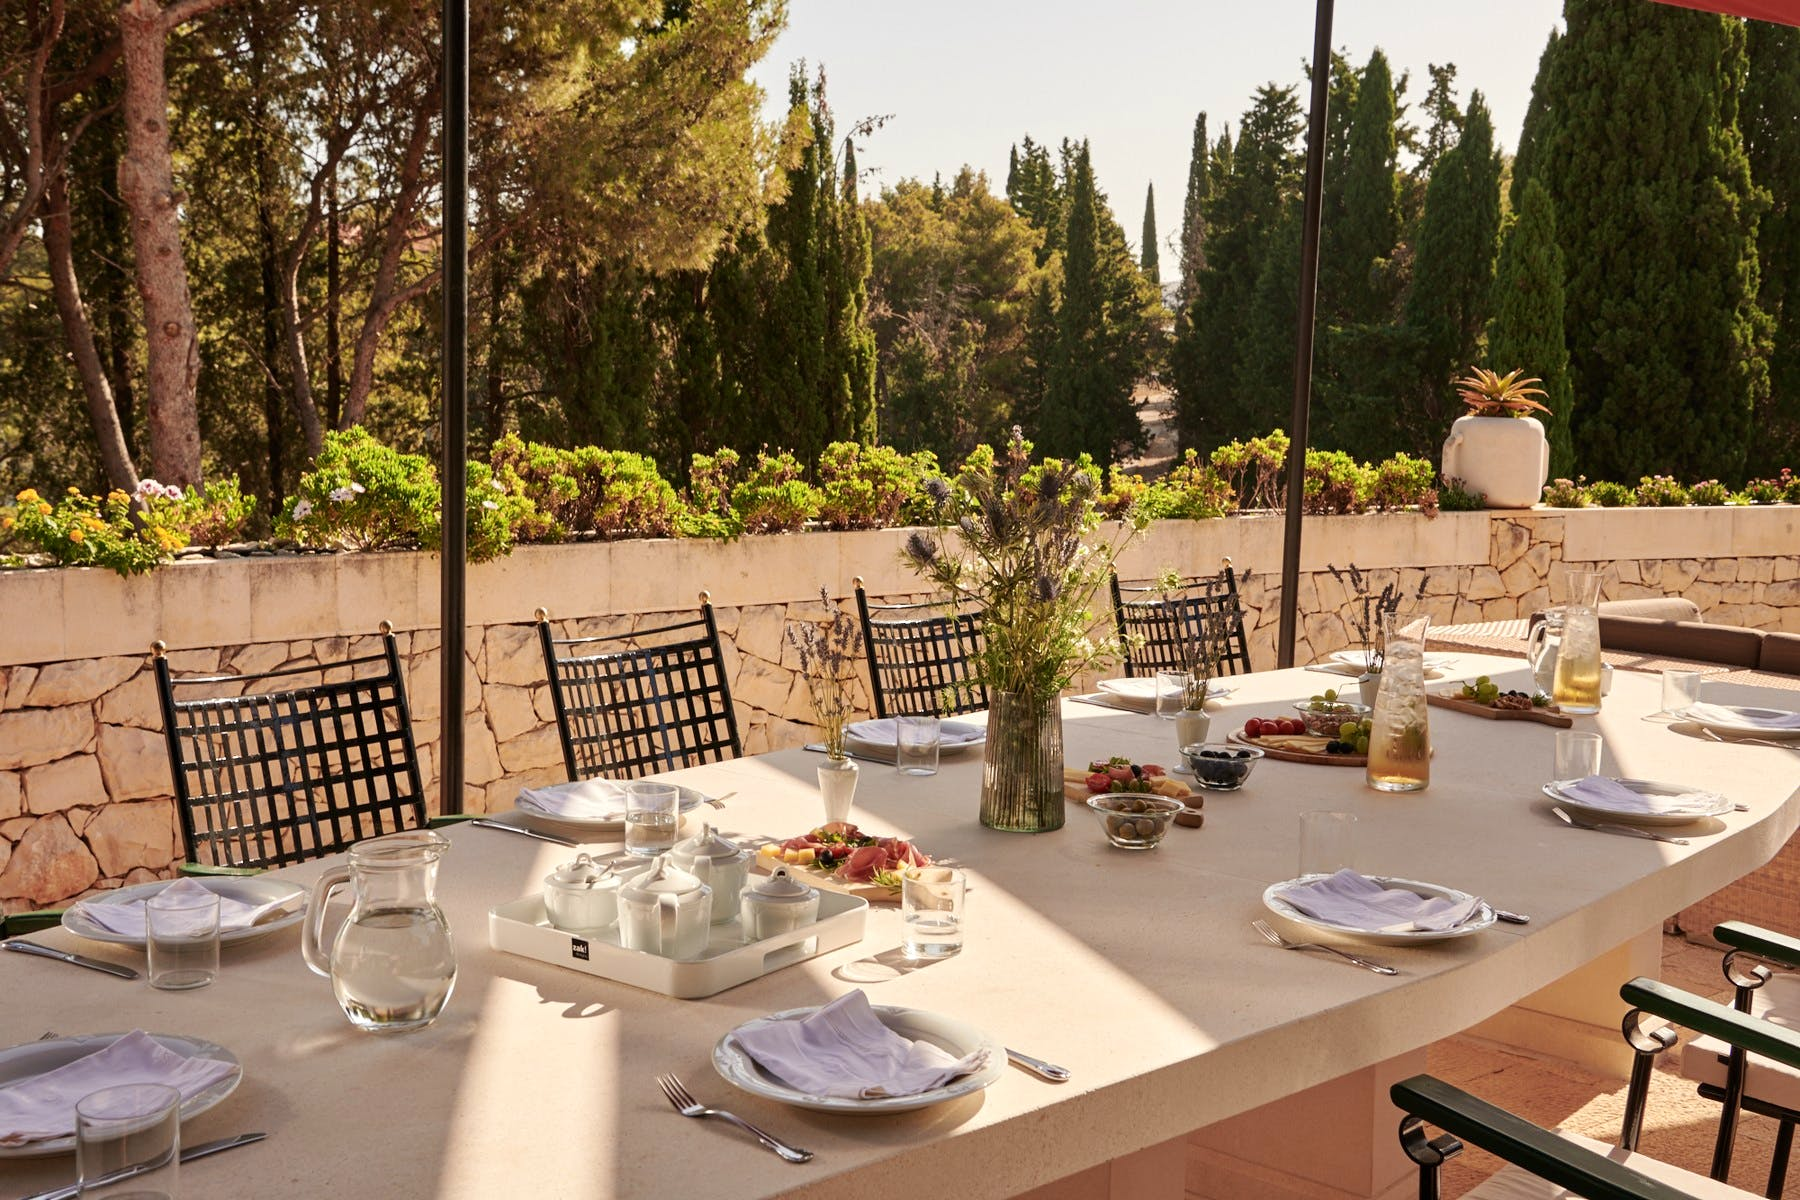 Romantic ambiance  around outdoor dining area